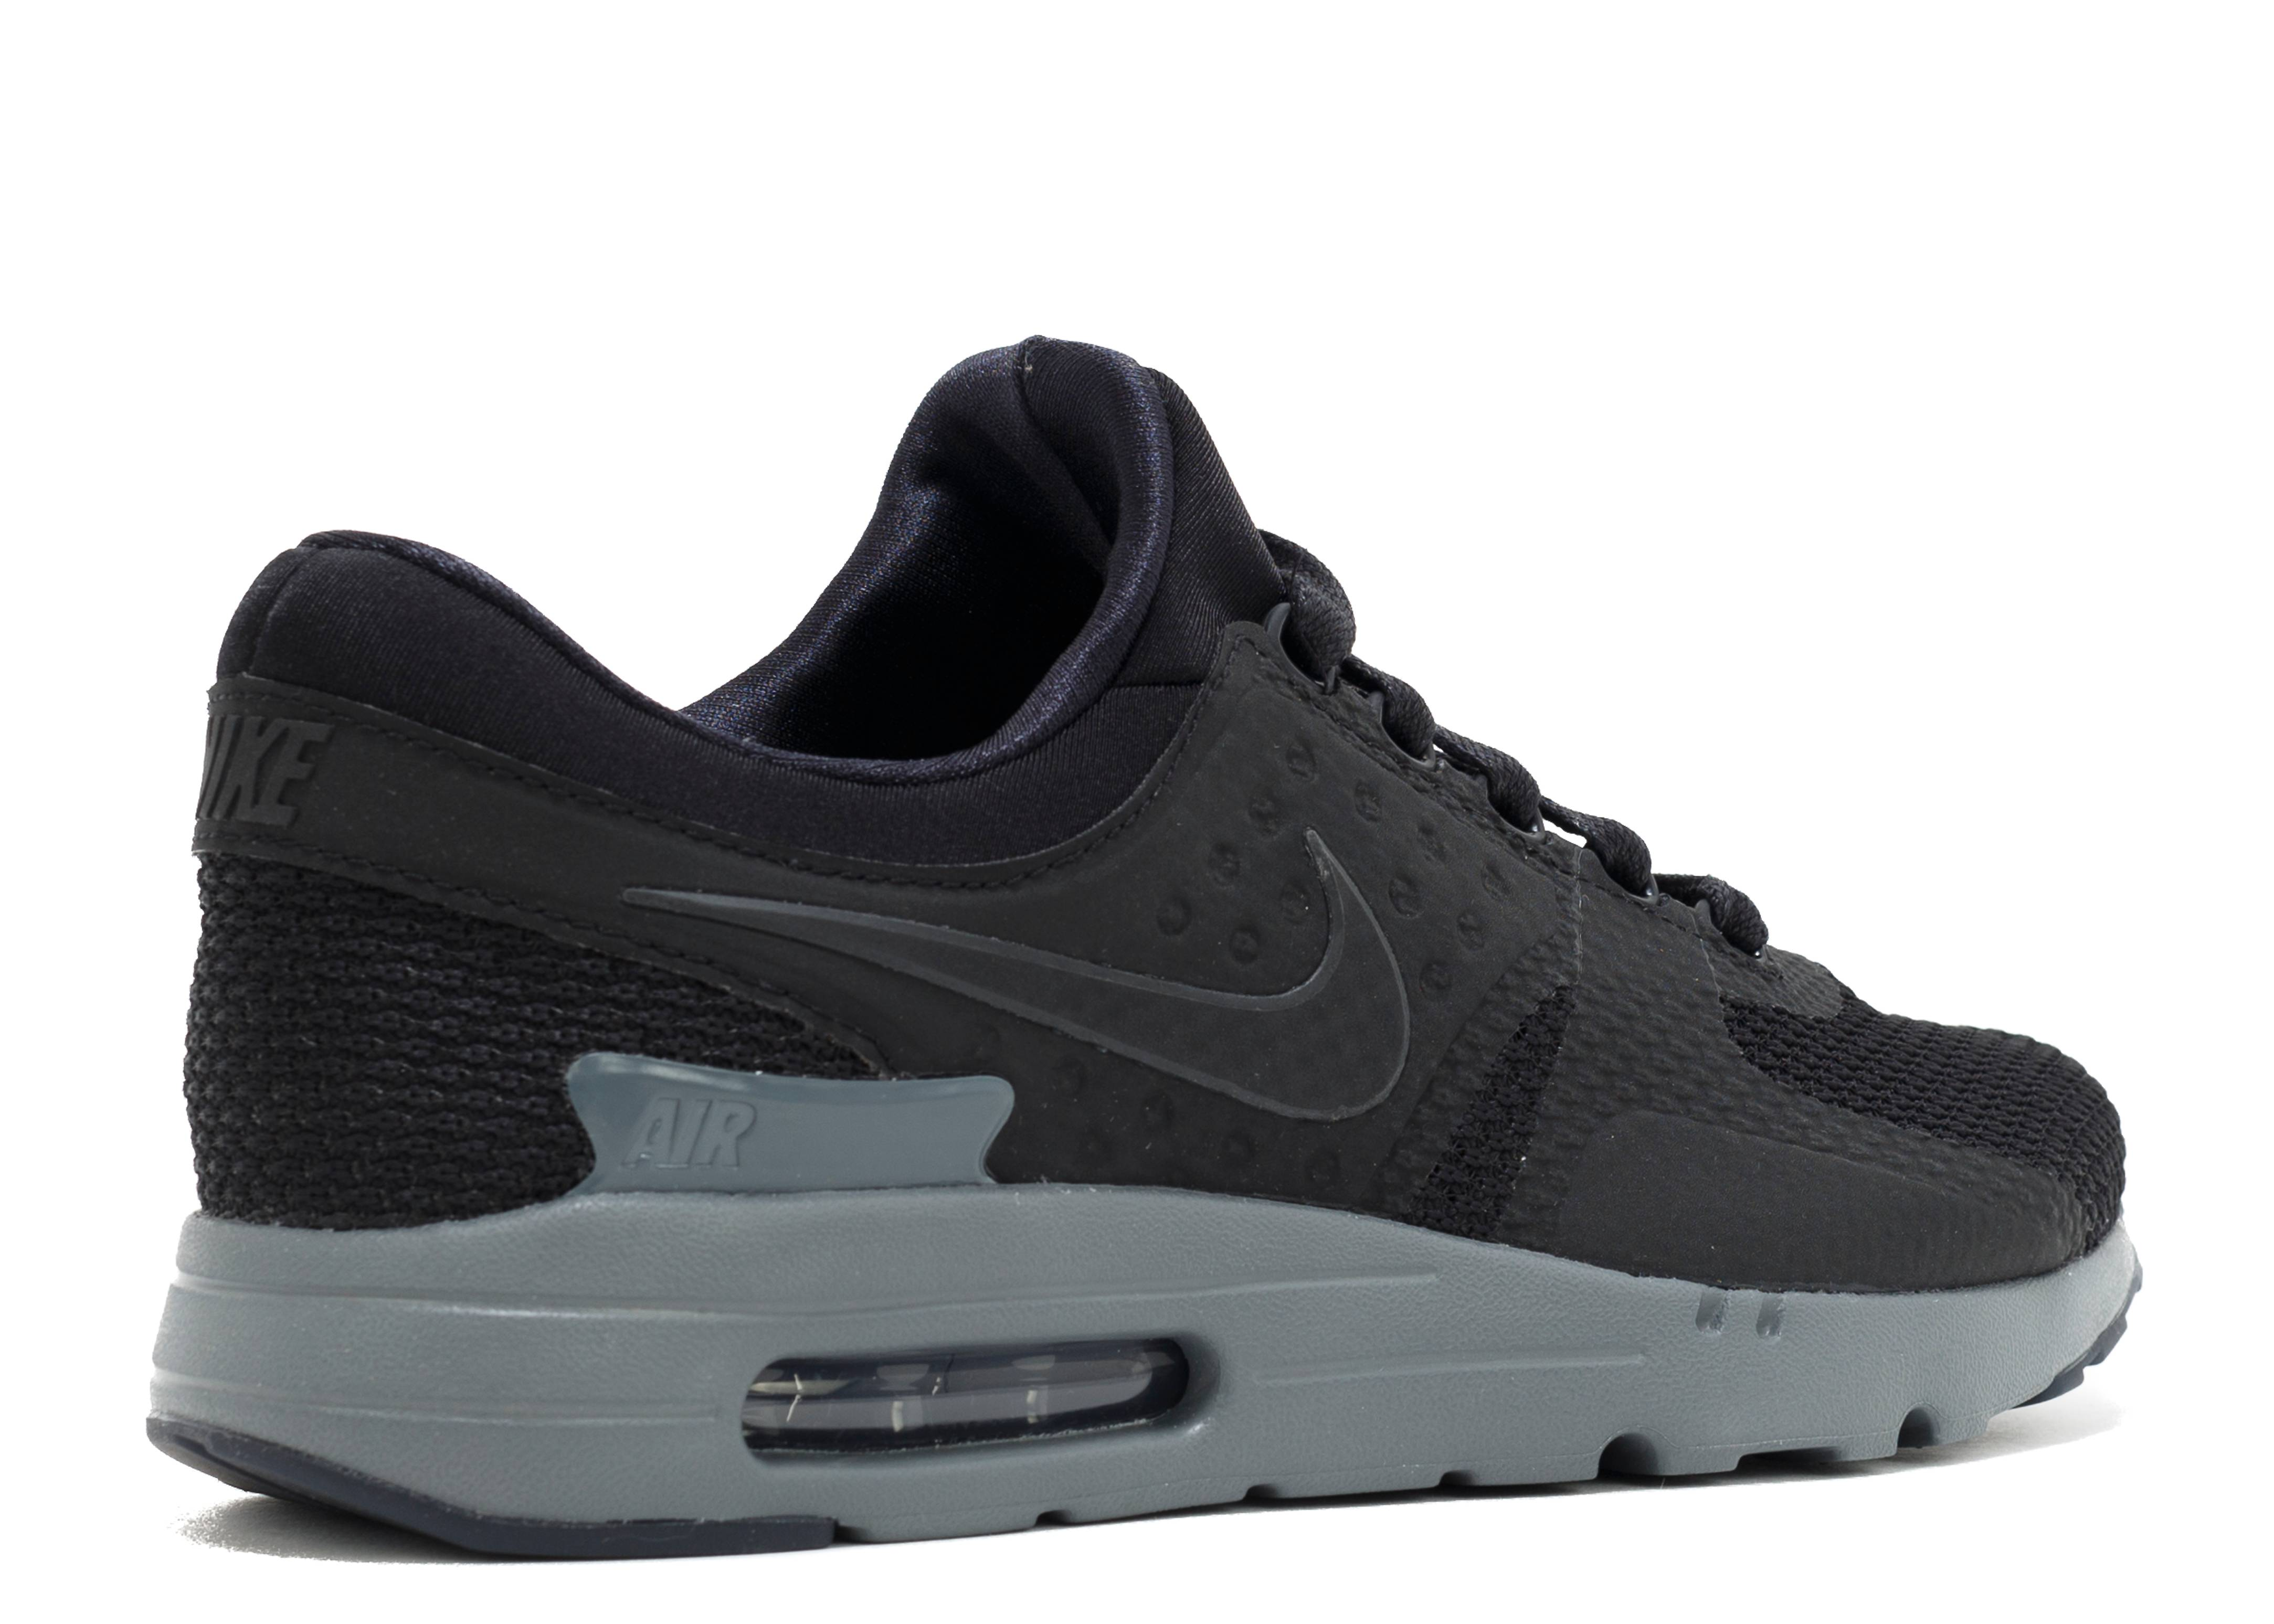 online store 646f7 42f88 ... netherlands air max zero qs nike 789695 001 black black dk grey flight  club c3ef1 49255